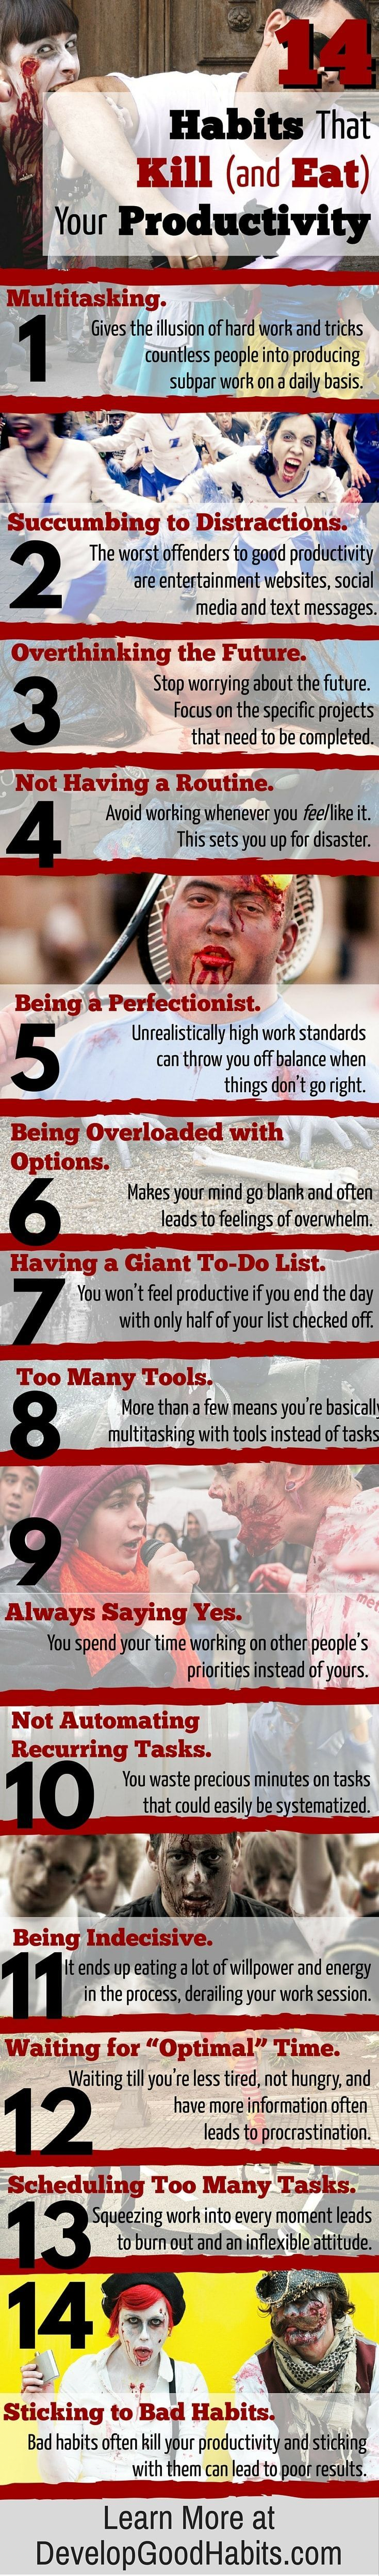 14 Habits that Kill Your Productivity and Time Management Efforts